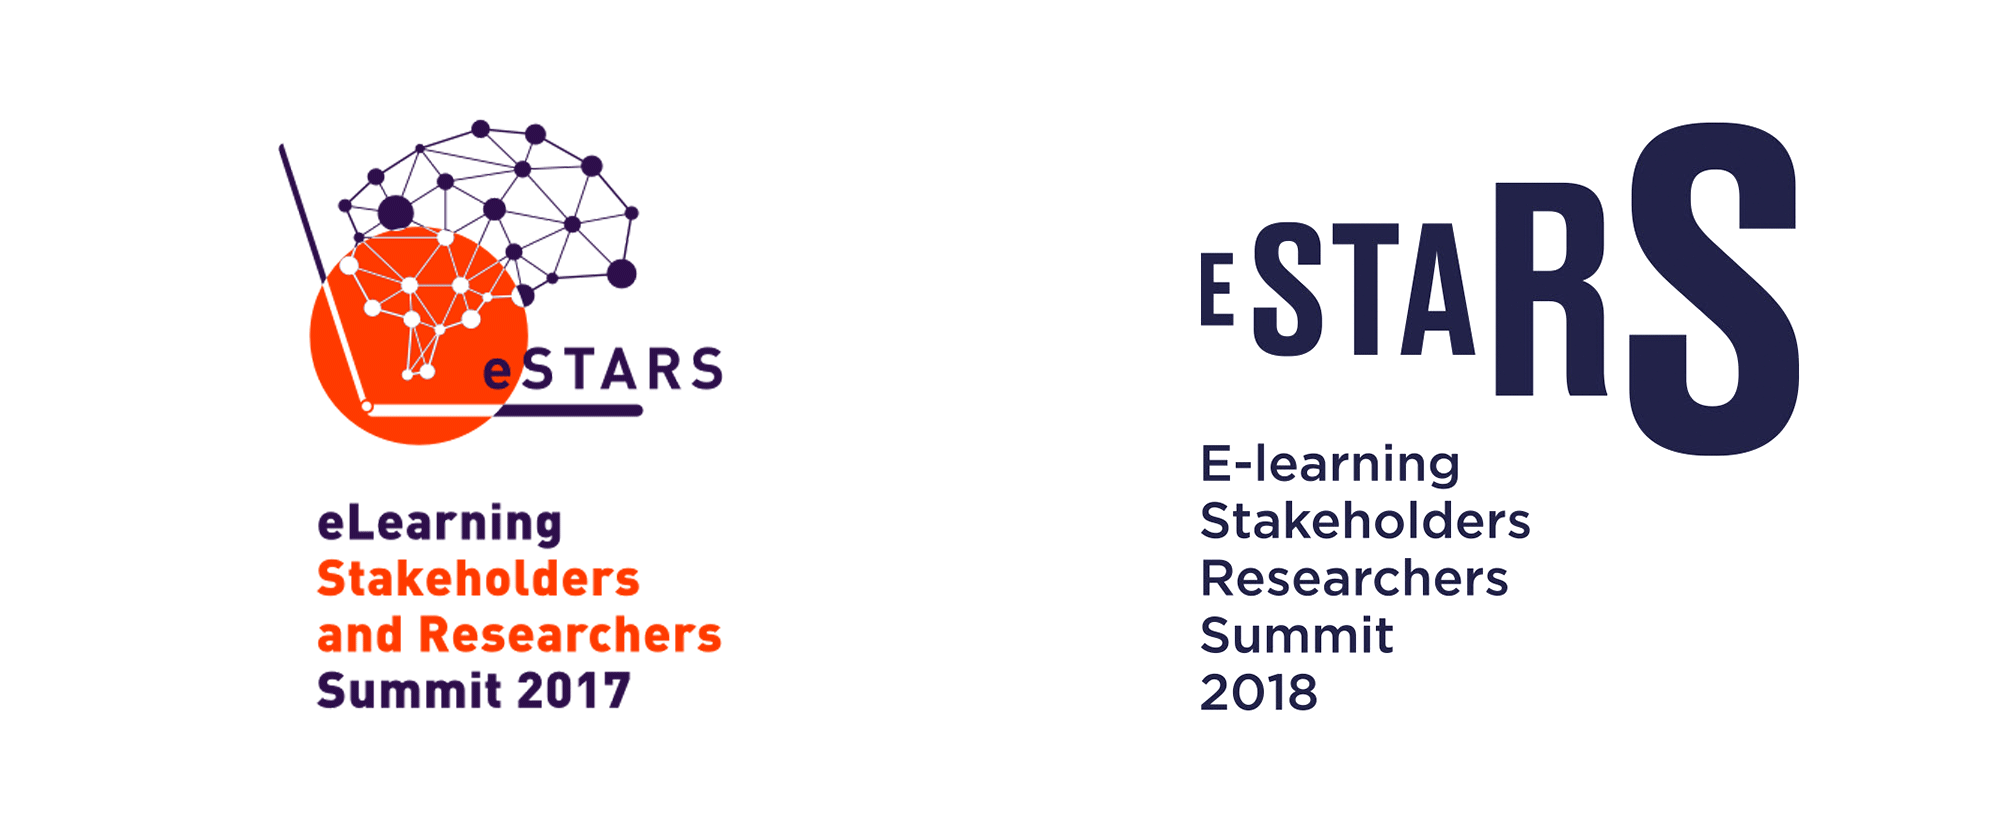 New Logo and Identity for eSTARS by OMSKY